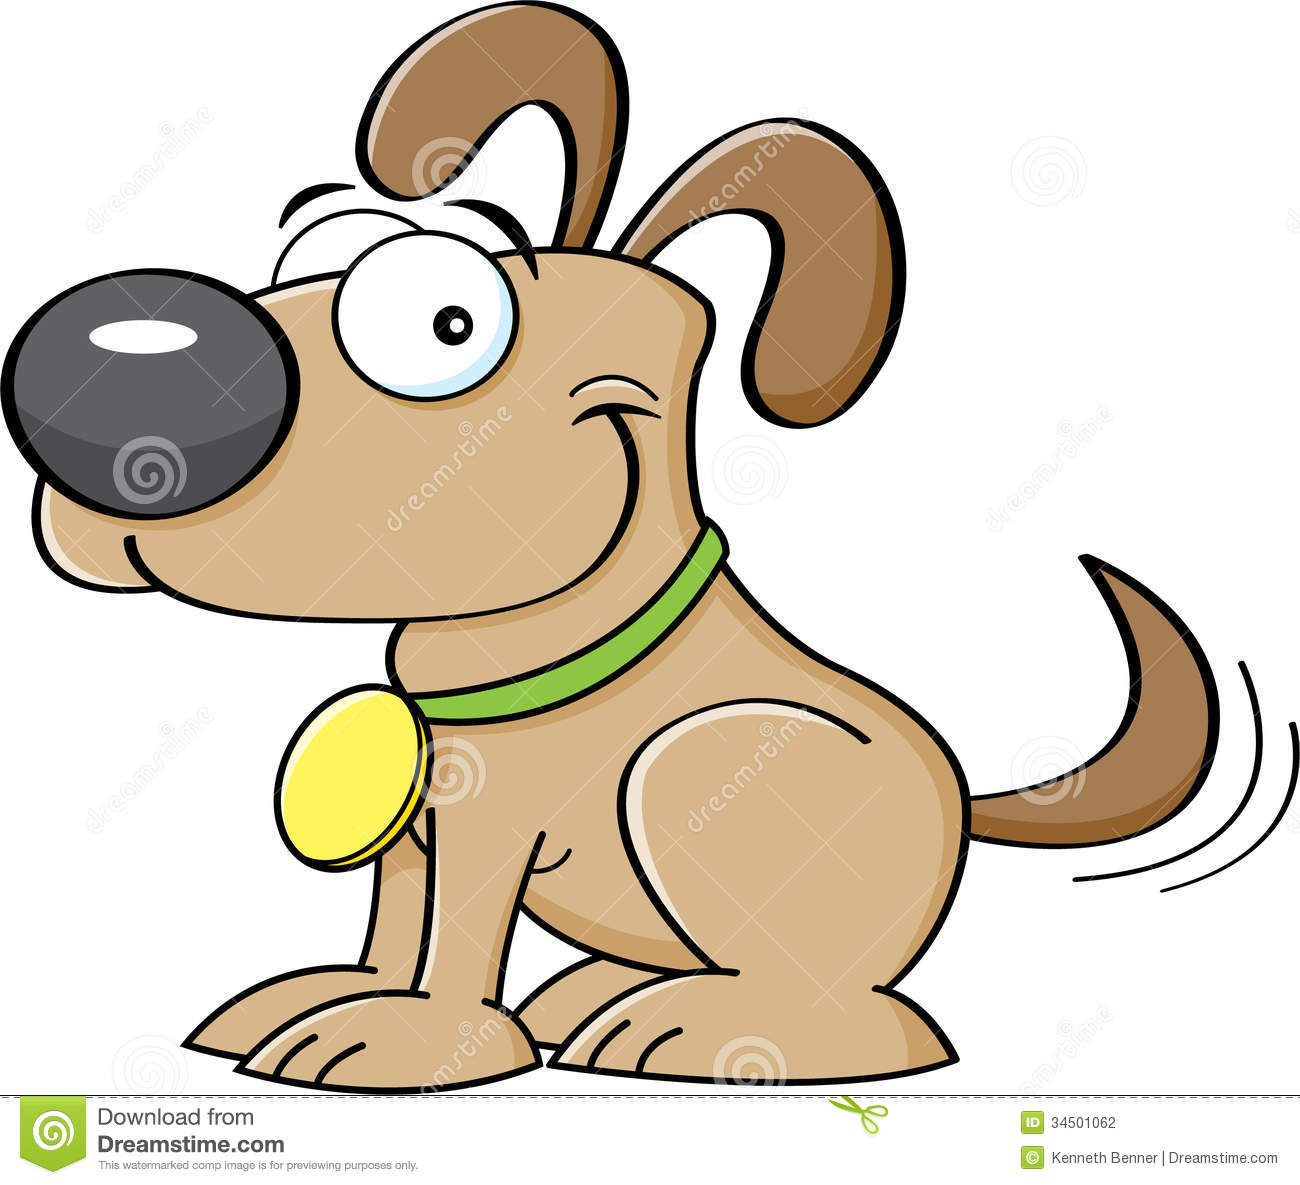 clipart dog wagging tail - photo #11